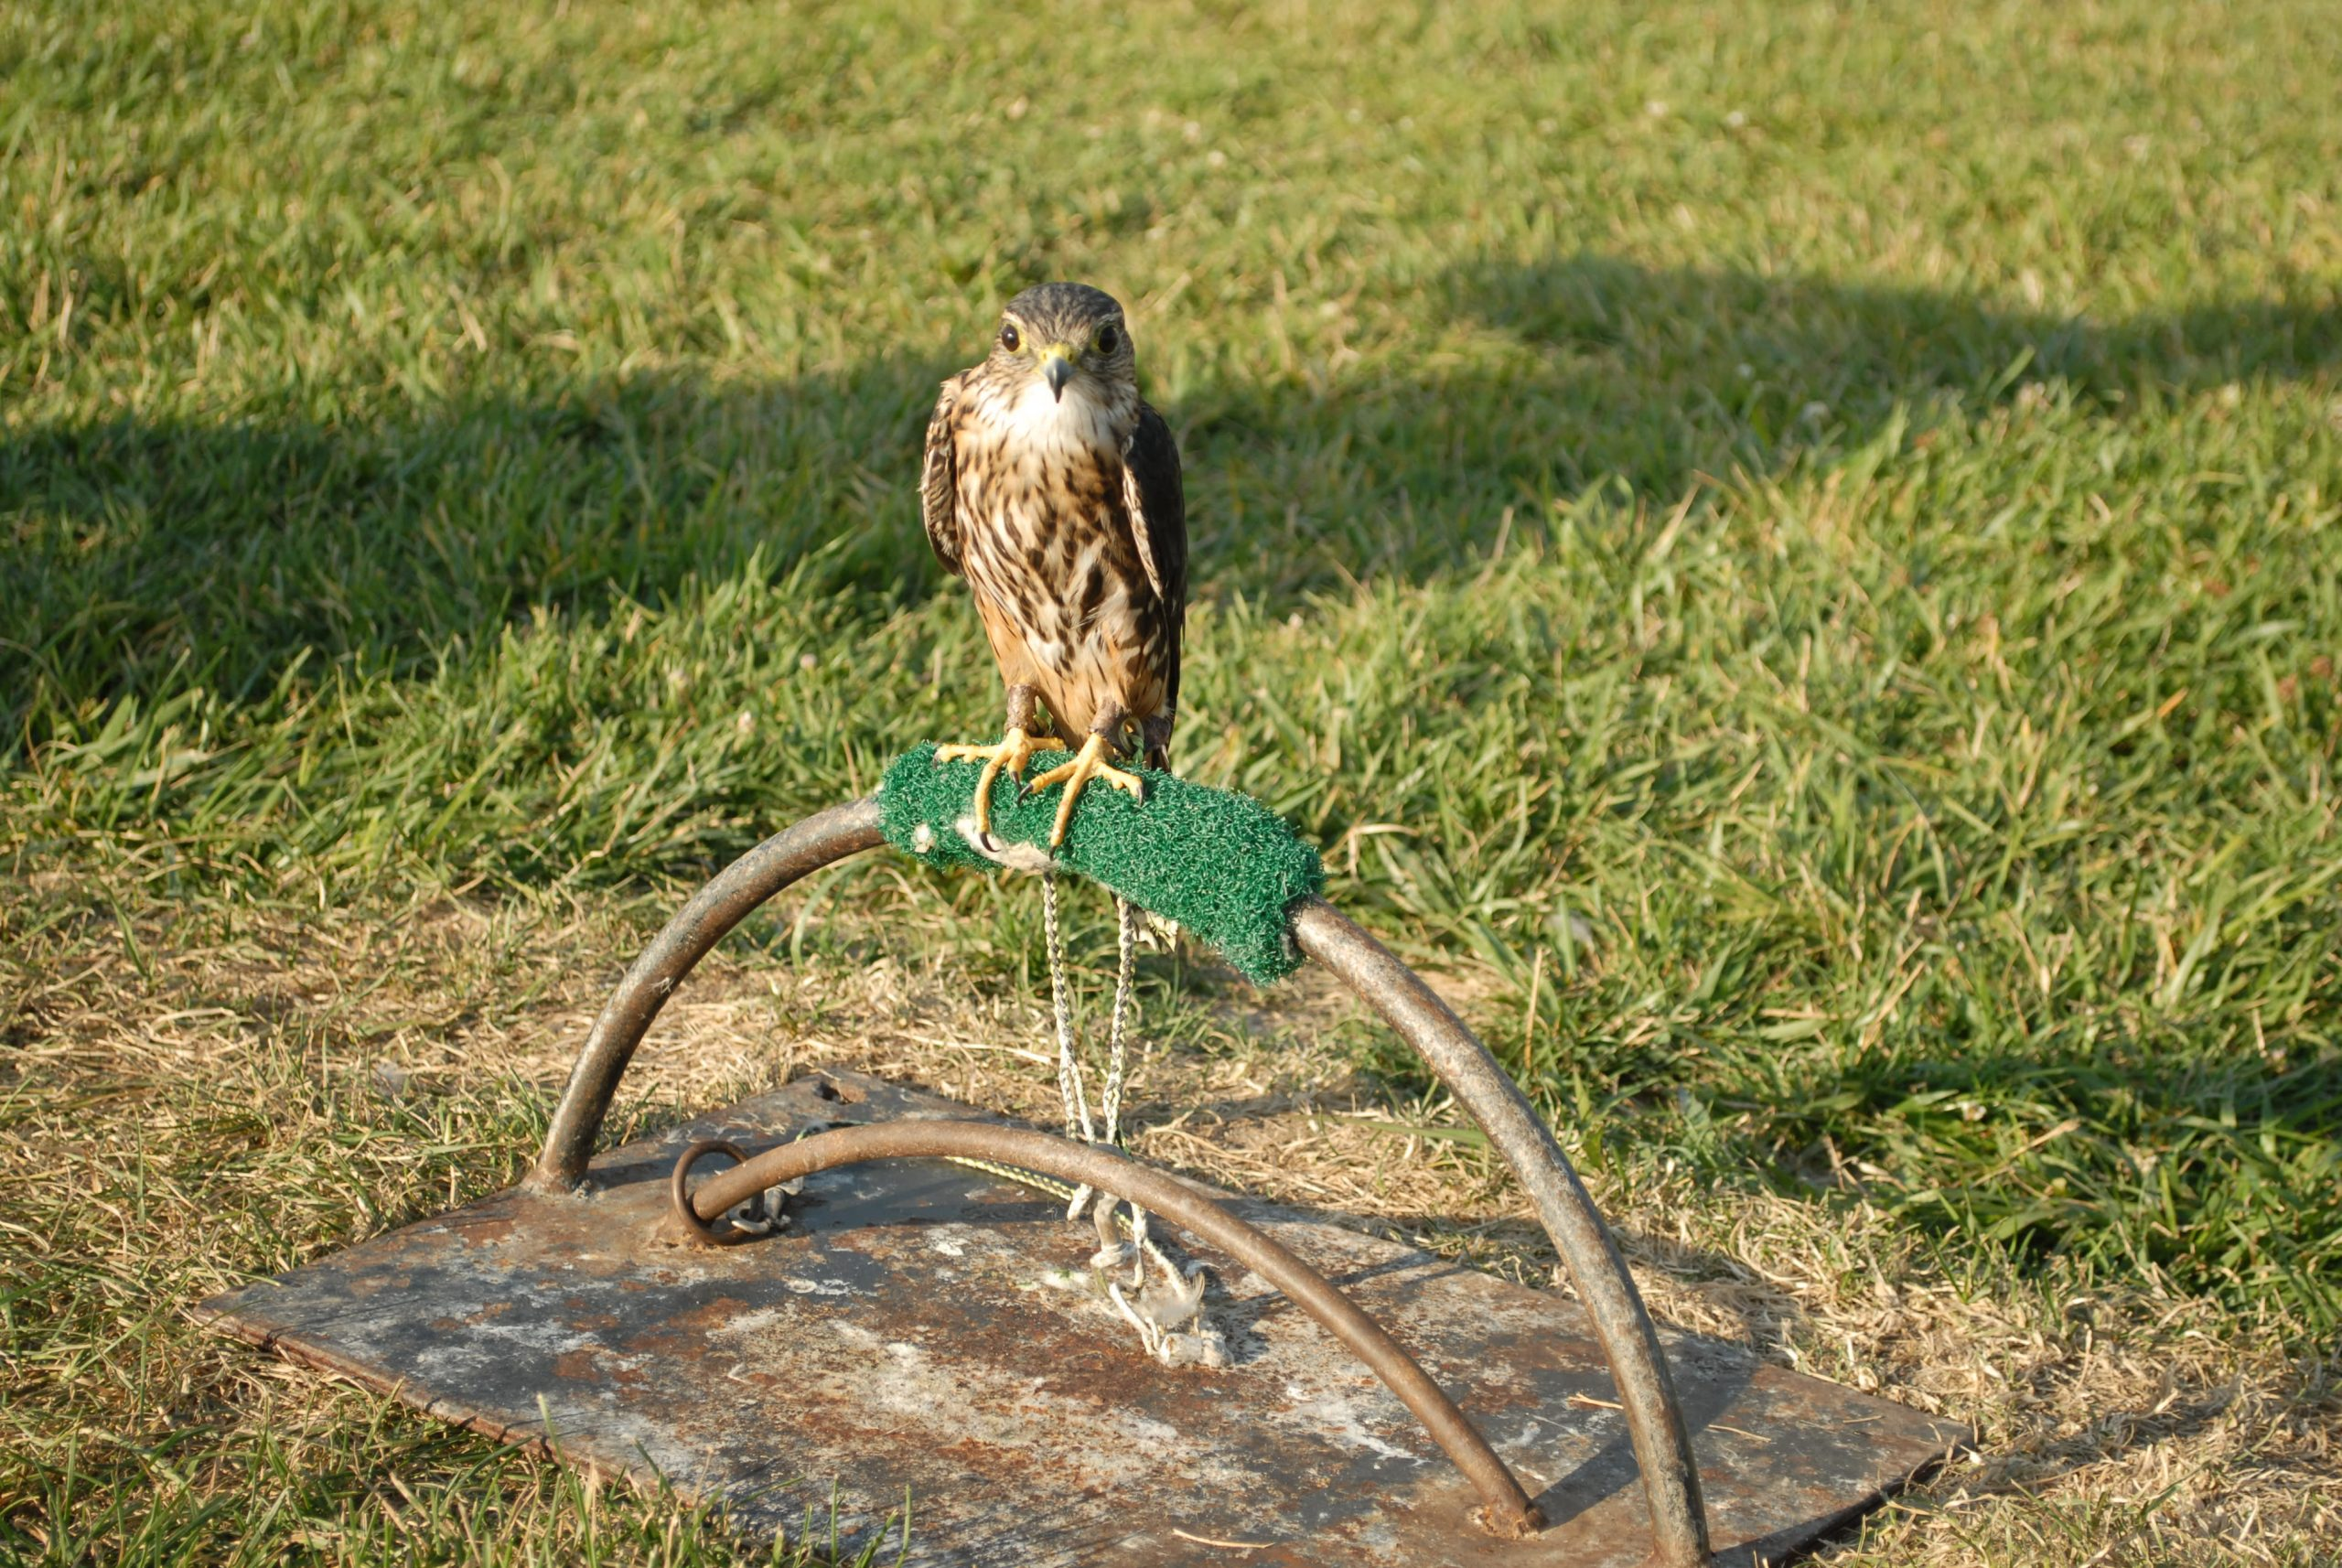 hawk sitting on metal arch